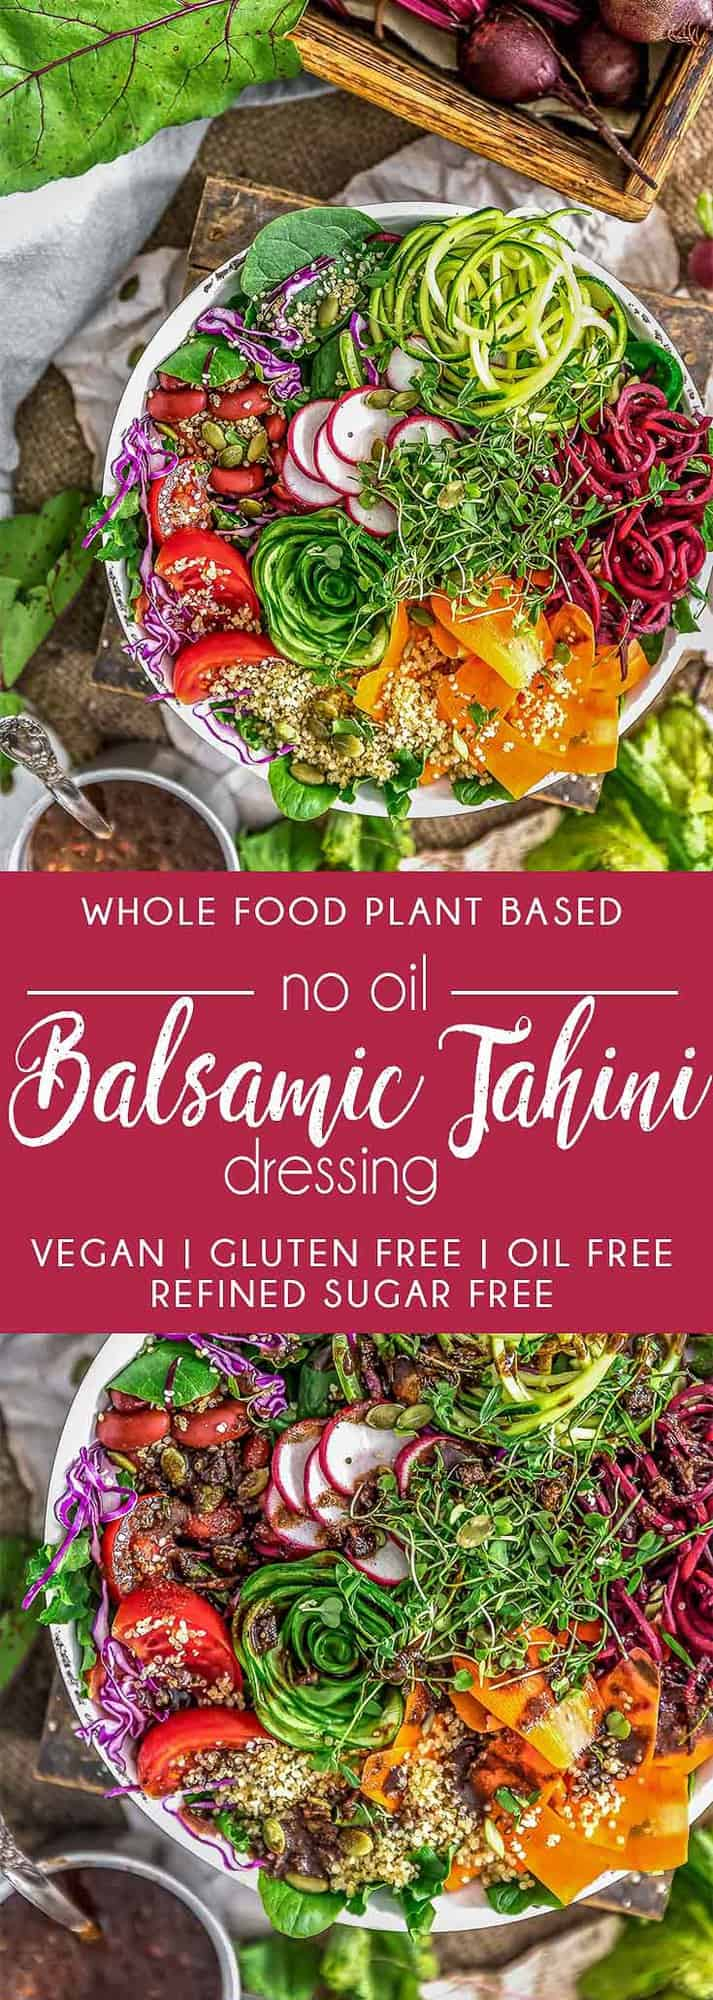 No Oil Balsamic Tahini Dressing, vegan dressing, vegan sauce, dressing, sauce, salad, plant based, vegan, vegetarian, whole food plant based, gluten free, recipe, wfpb, healthy, healthy vegan, oil free, no refined sugar, no oil, refined sugar free, dairy free, dinner party, entertaining, dinner, lunch, salad, side, no oil dressing, no oil sauce, easy recipe, appetizer, summer, fall, winter, spring